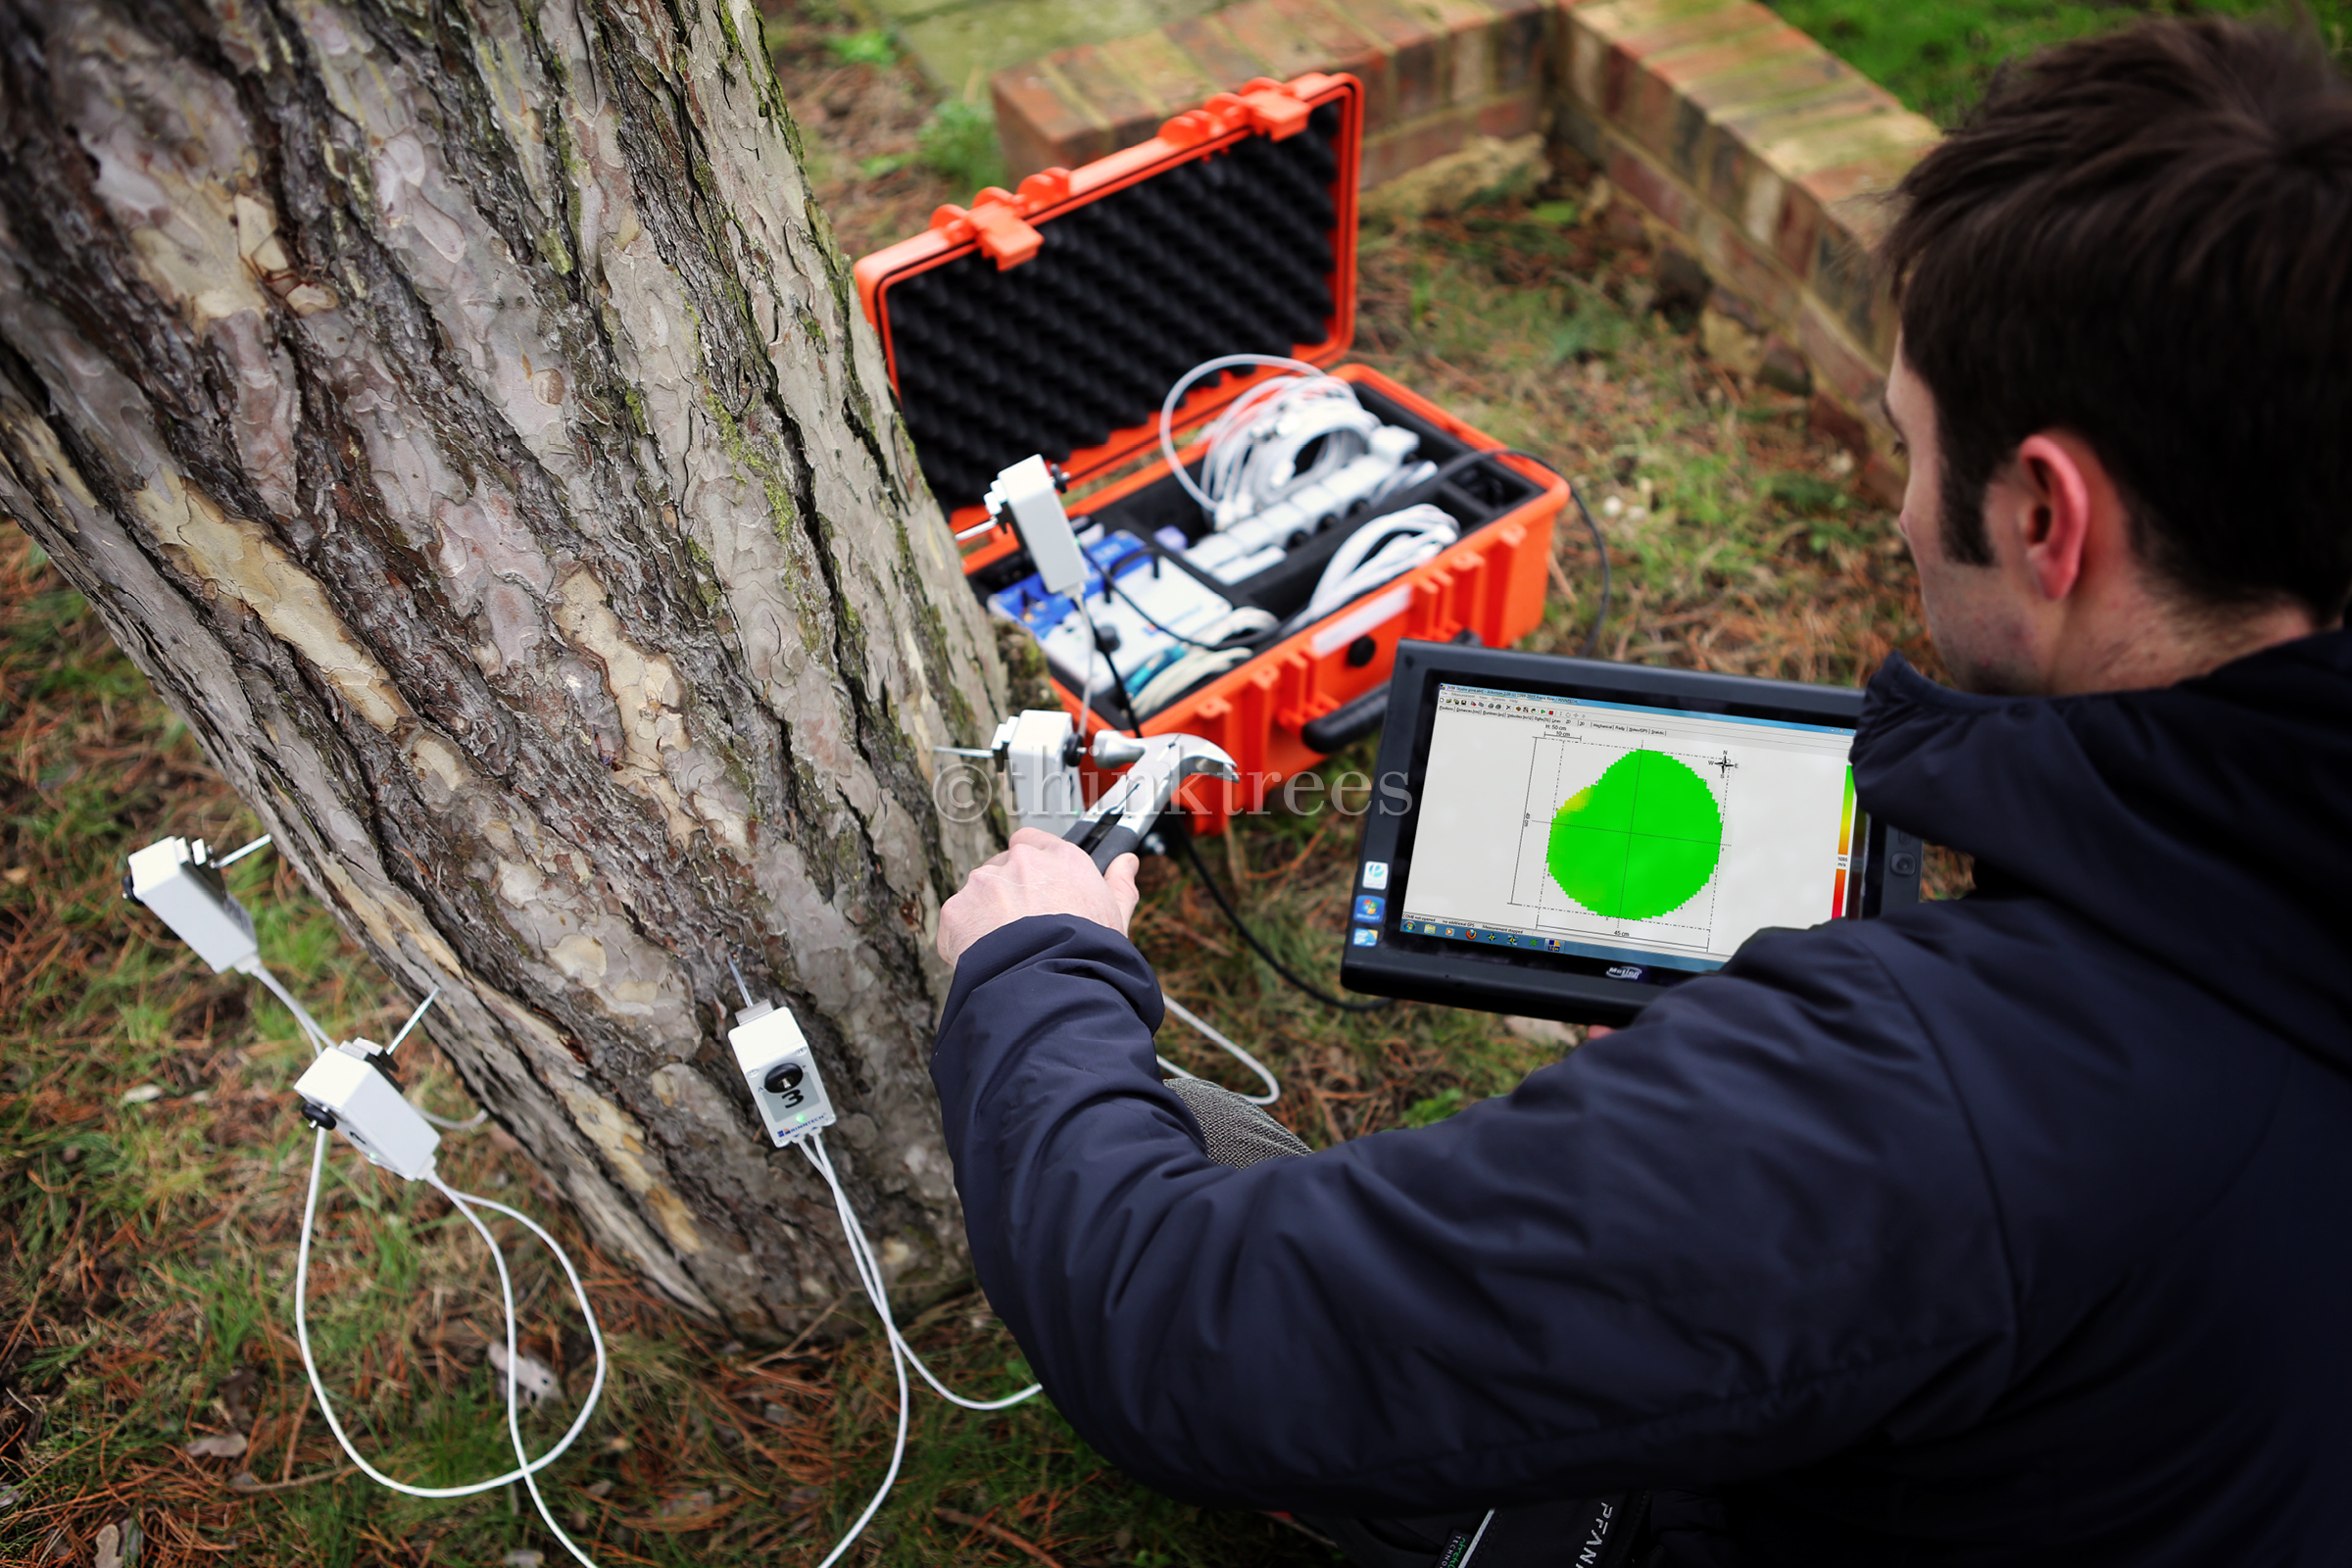 Tree expert testing a pine tree for decay using an arbotom impulse tomography unit